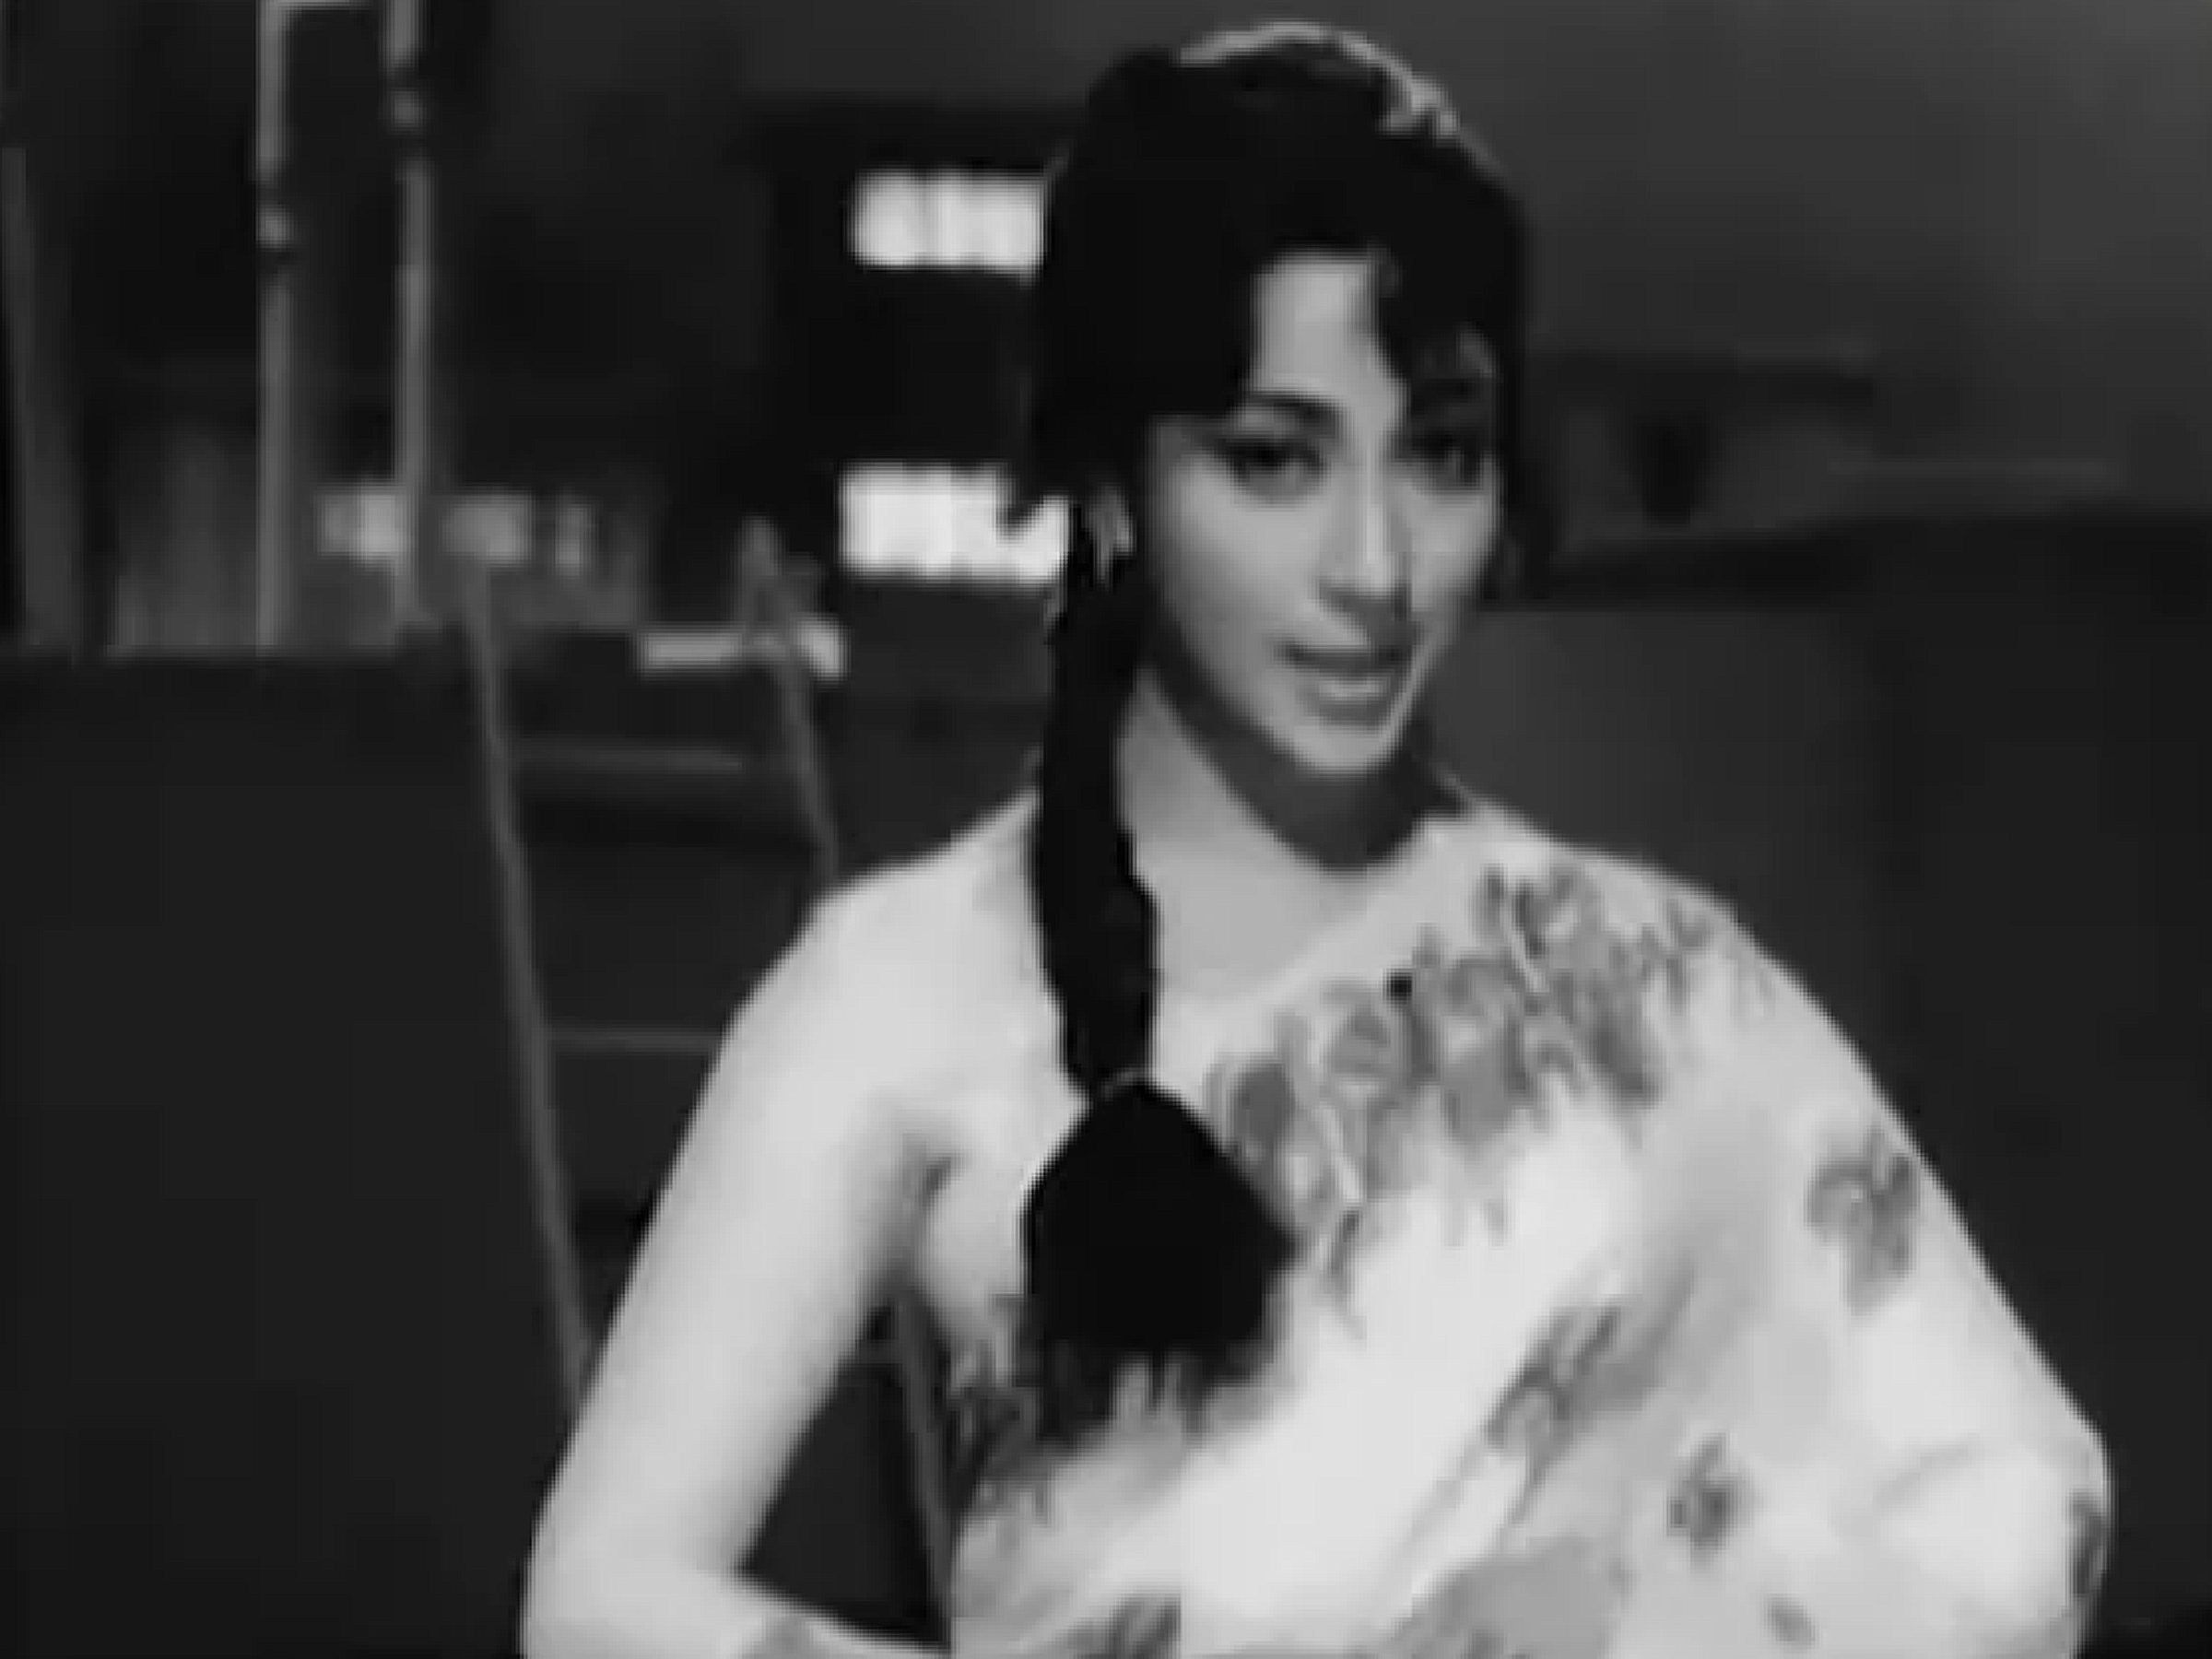 mala sinha 2016mala sinha 2016, mala sinha now, mala sinha, mala sinha wiki, mala sinha actress, mala sinha death, mala sinha today, mala sinha daughter, mala sinha songs, mala sinha husband, mala sinha photos, mala sinha images, mala sinha family, mala sinha hit songs, mala sinha latest photo, mala sinha hot, mala sinha songs list, mala sinha family photo, mala sinha interview, mala sinha pics